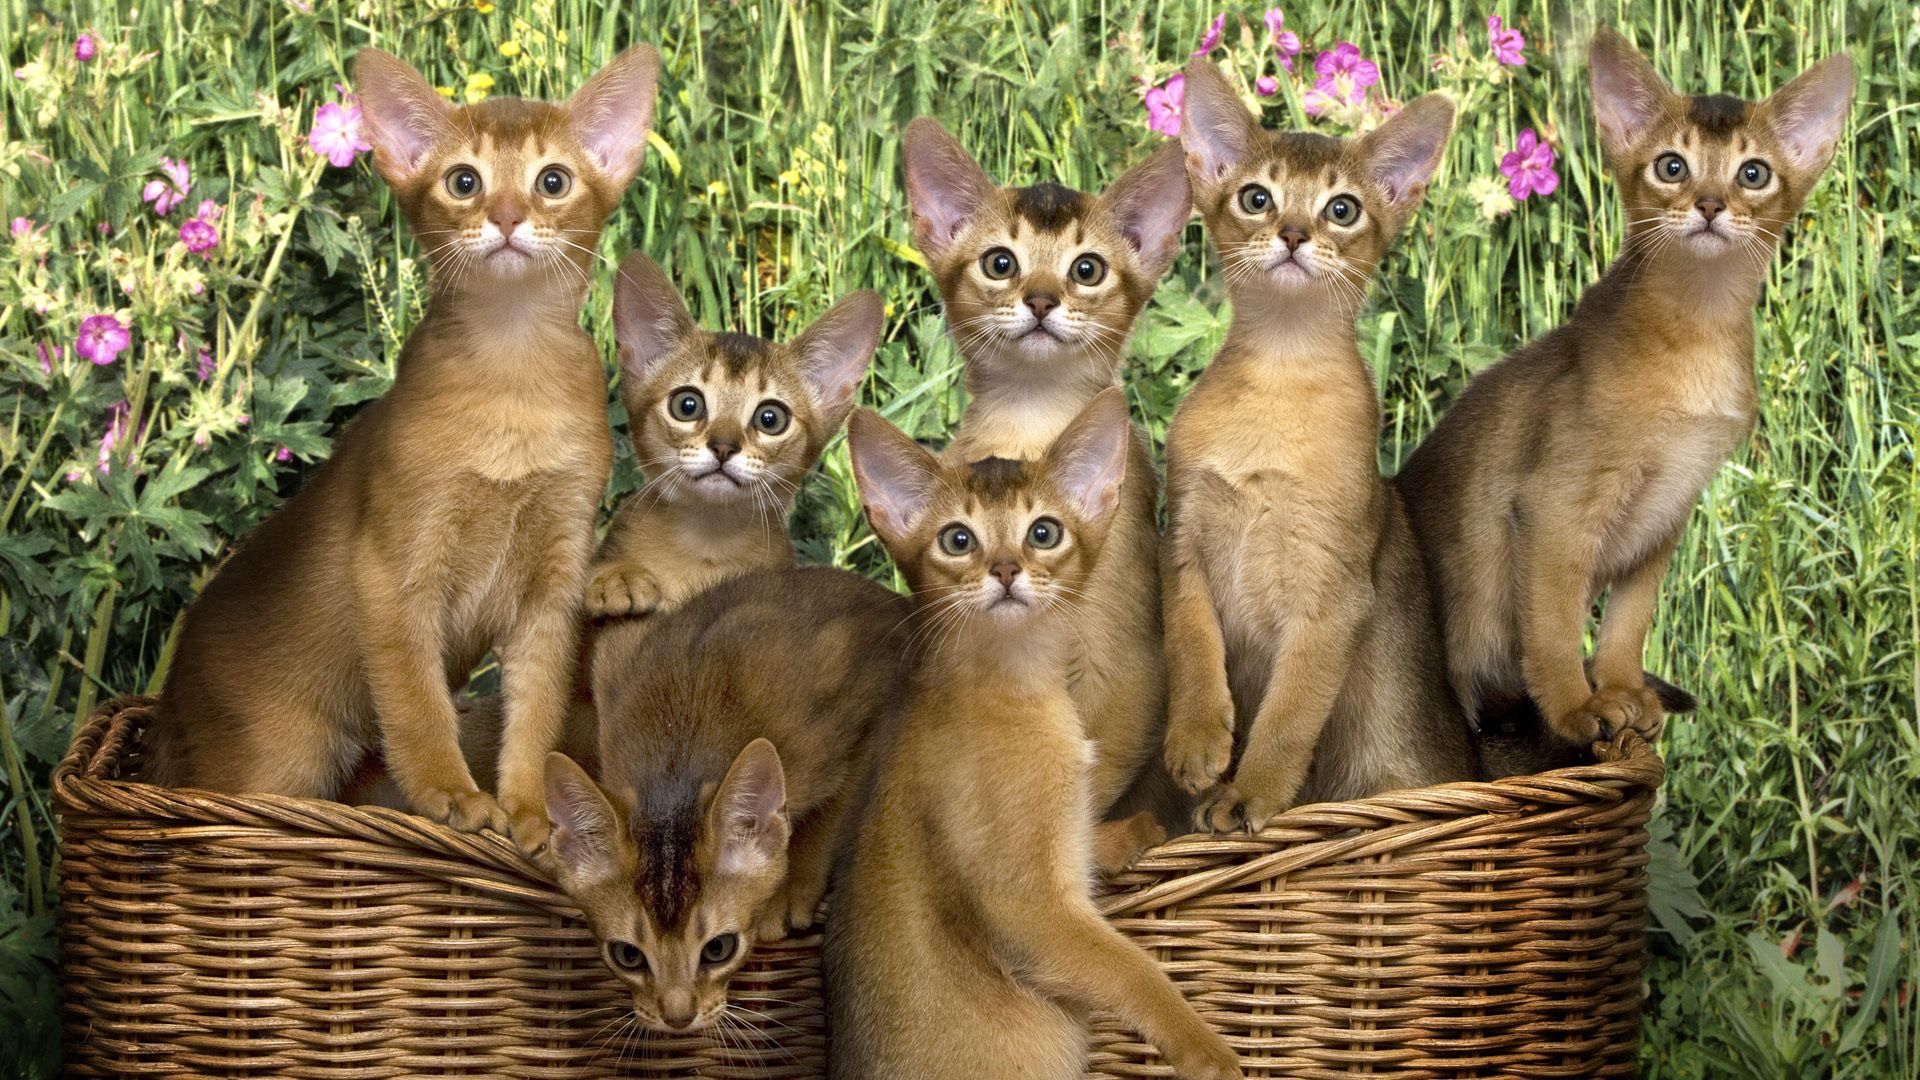 88881 Screensavers and Wallpapers Kittens for phone. Download Animals, Flowers, Basket, Kittens, Lots Of, Multitude pictures for free